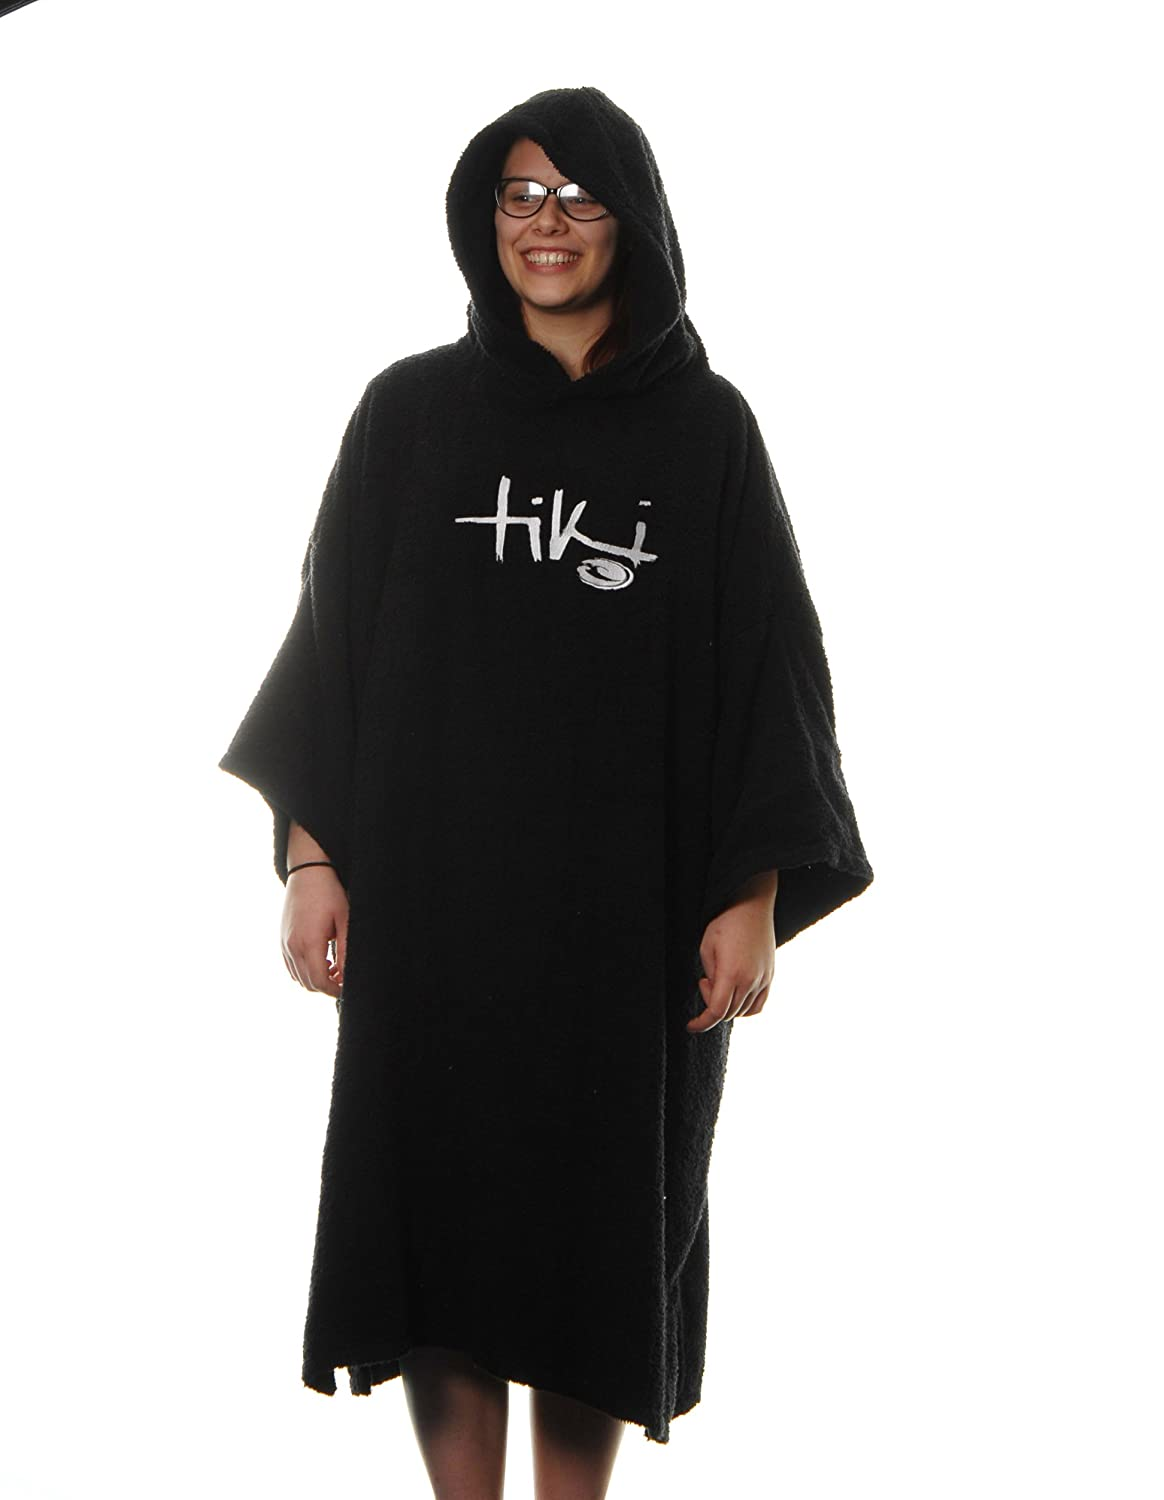 4a6f45f256 Tiki Adult Hooded Towelling Changing Robe Black  Amazon.co.uk  Sports    Outdoors